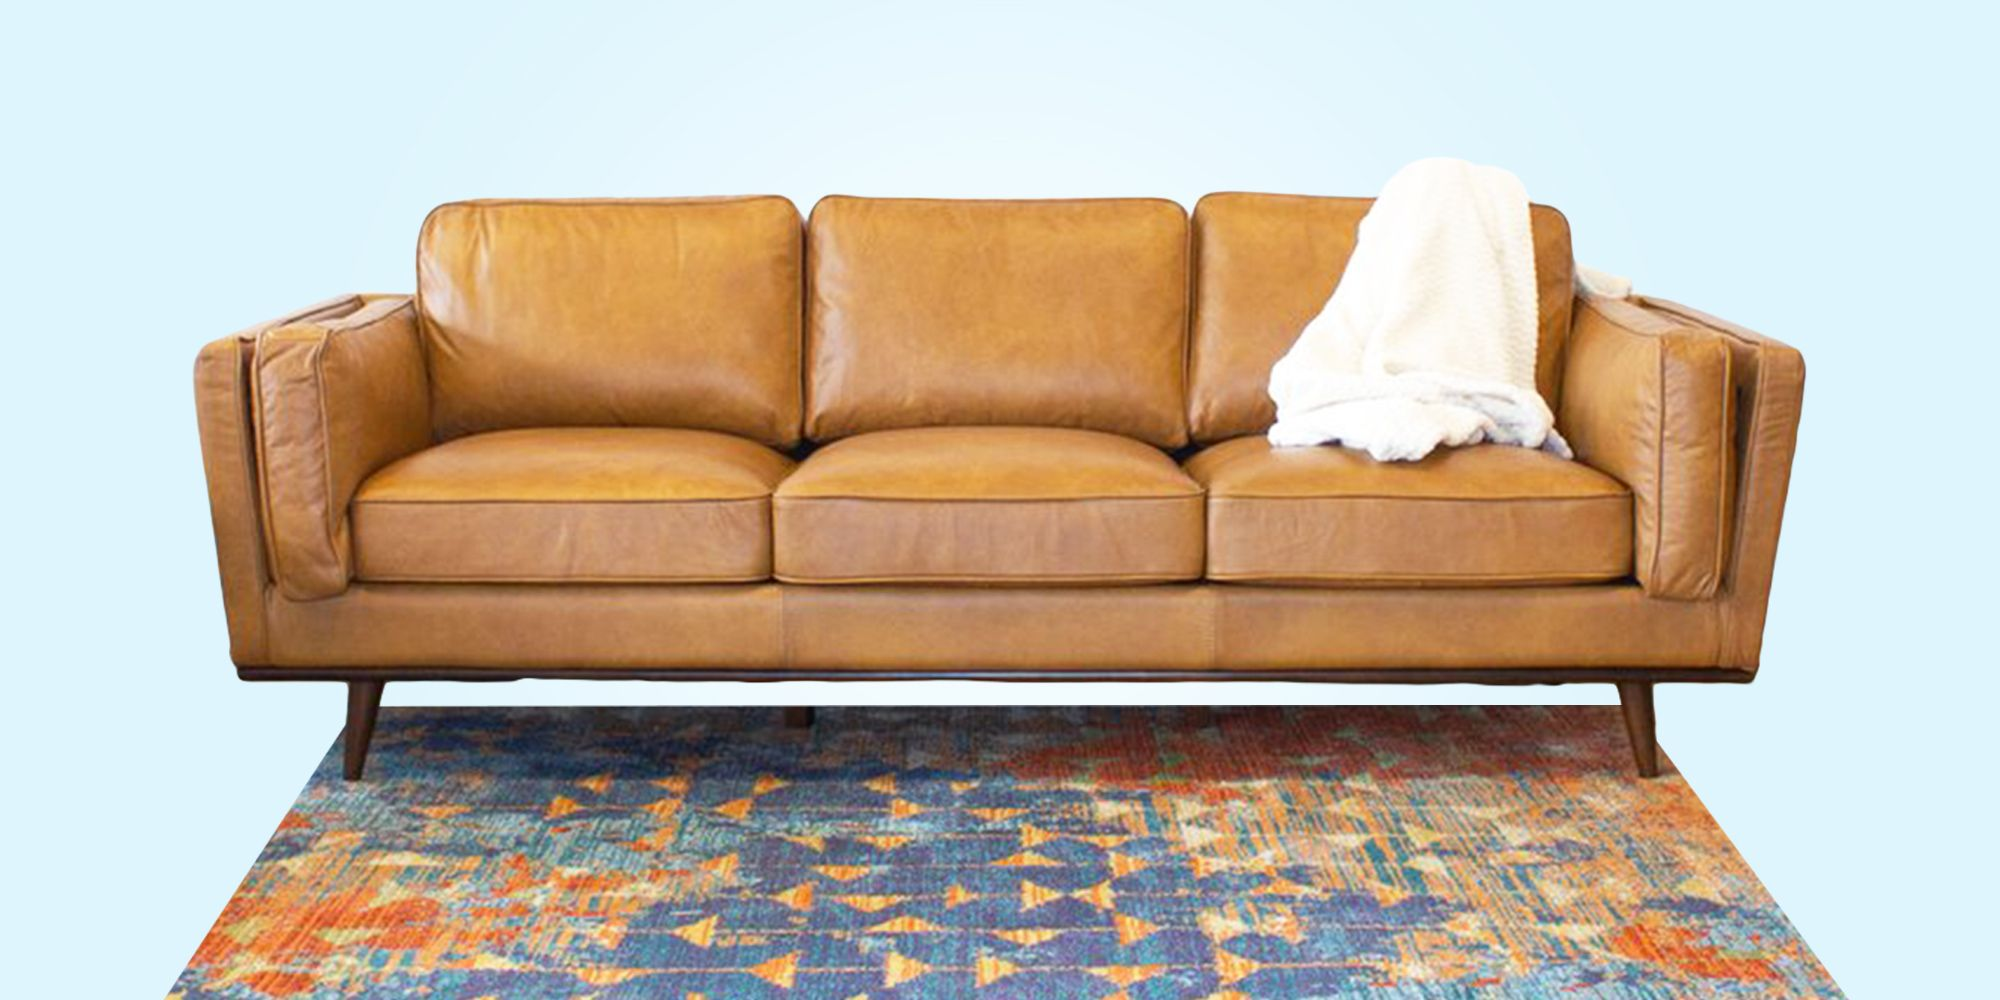 20 Luxury Couches to Host Luxury Naps in 2021